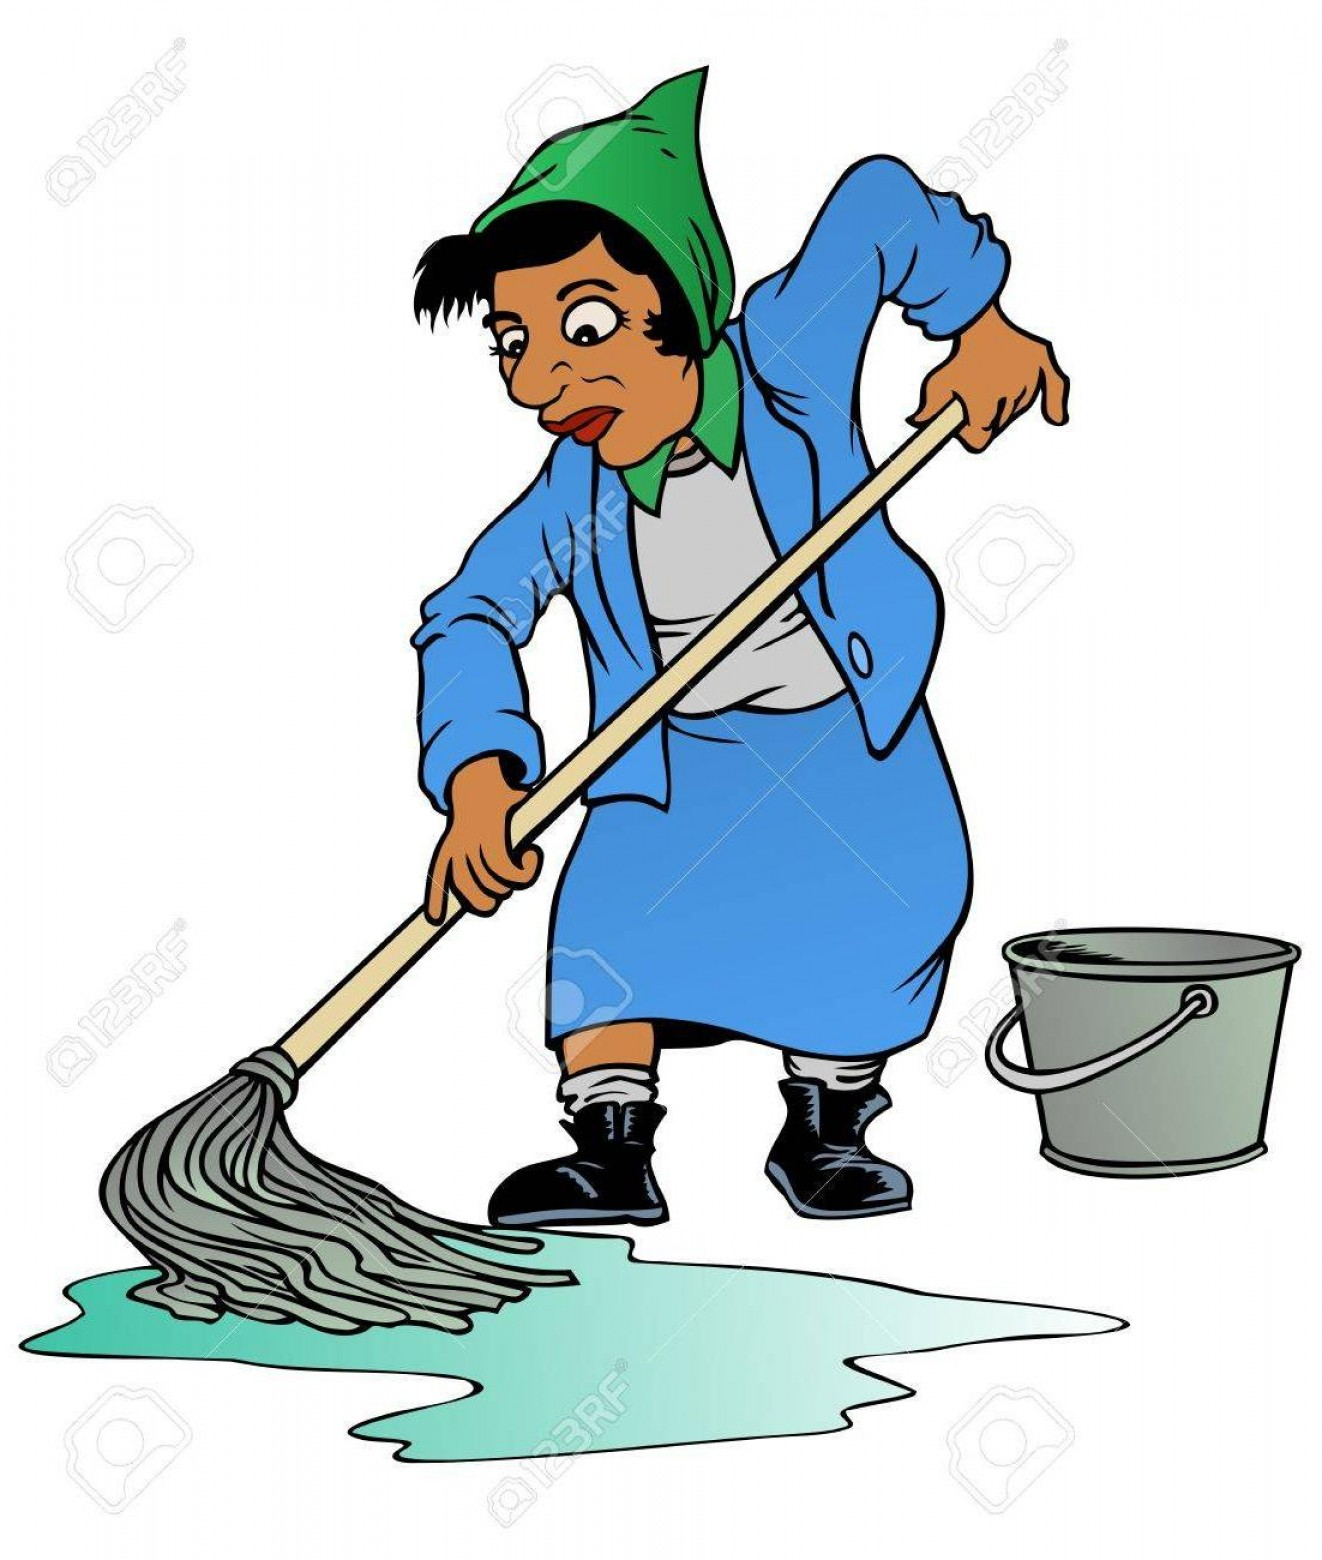 Mop And Bucket Clip Art Vector: Best Hd Tired Woman Using An Old Fashioned Mop And Bucket To Clean Stock Vector Drawing